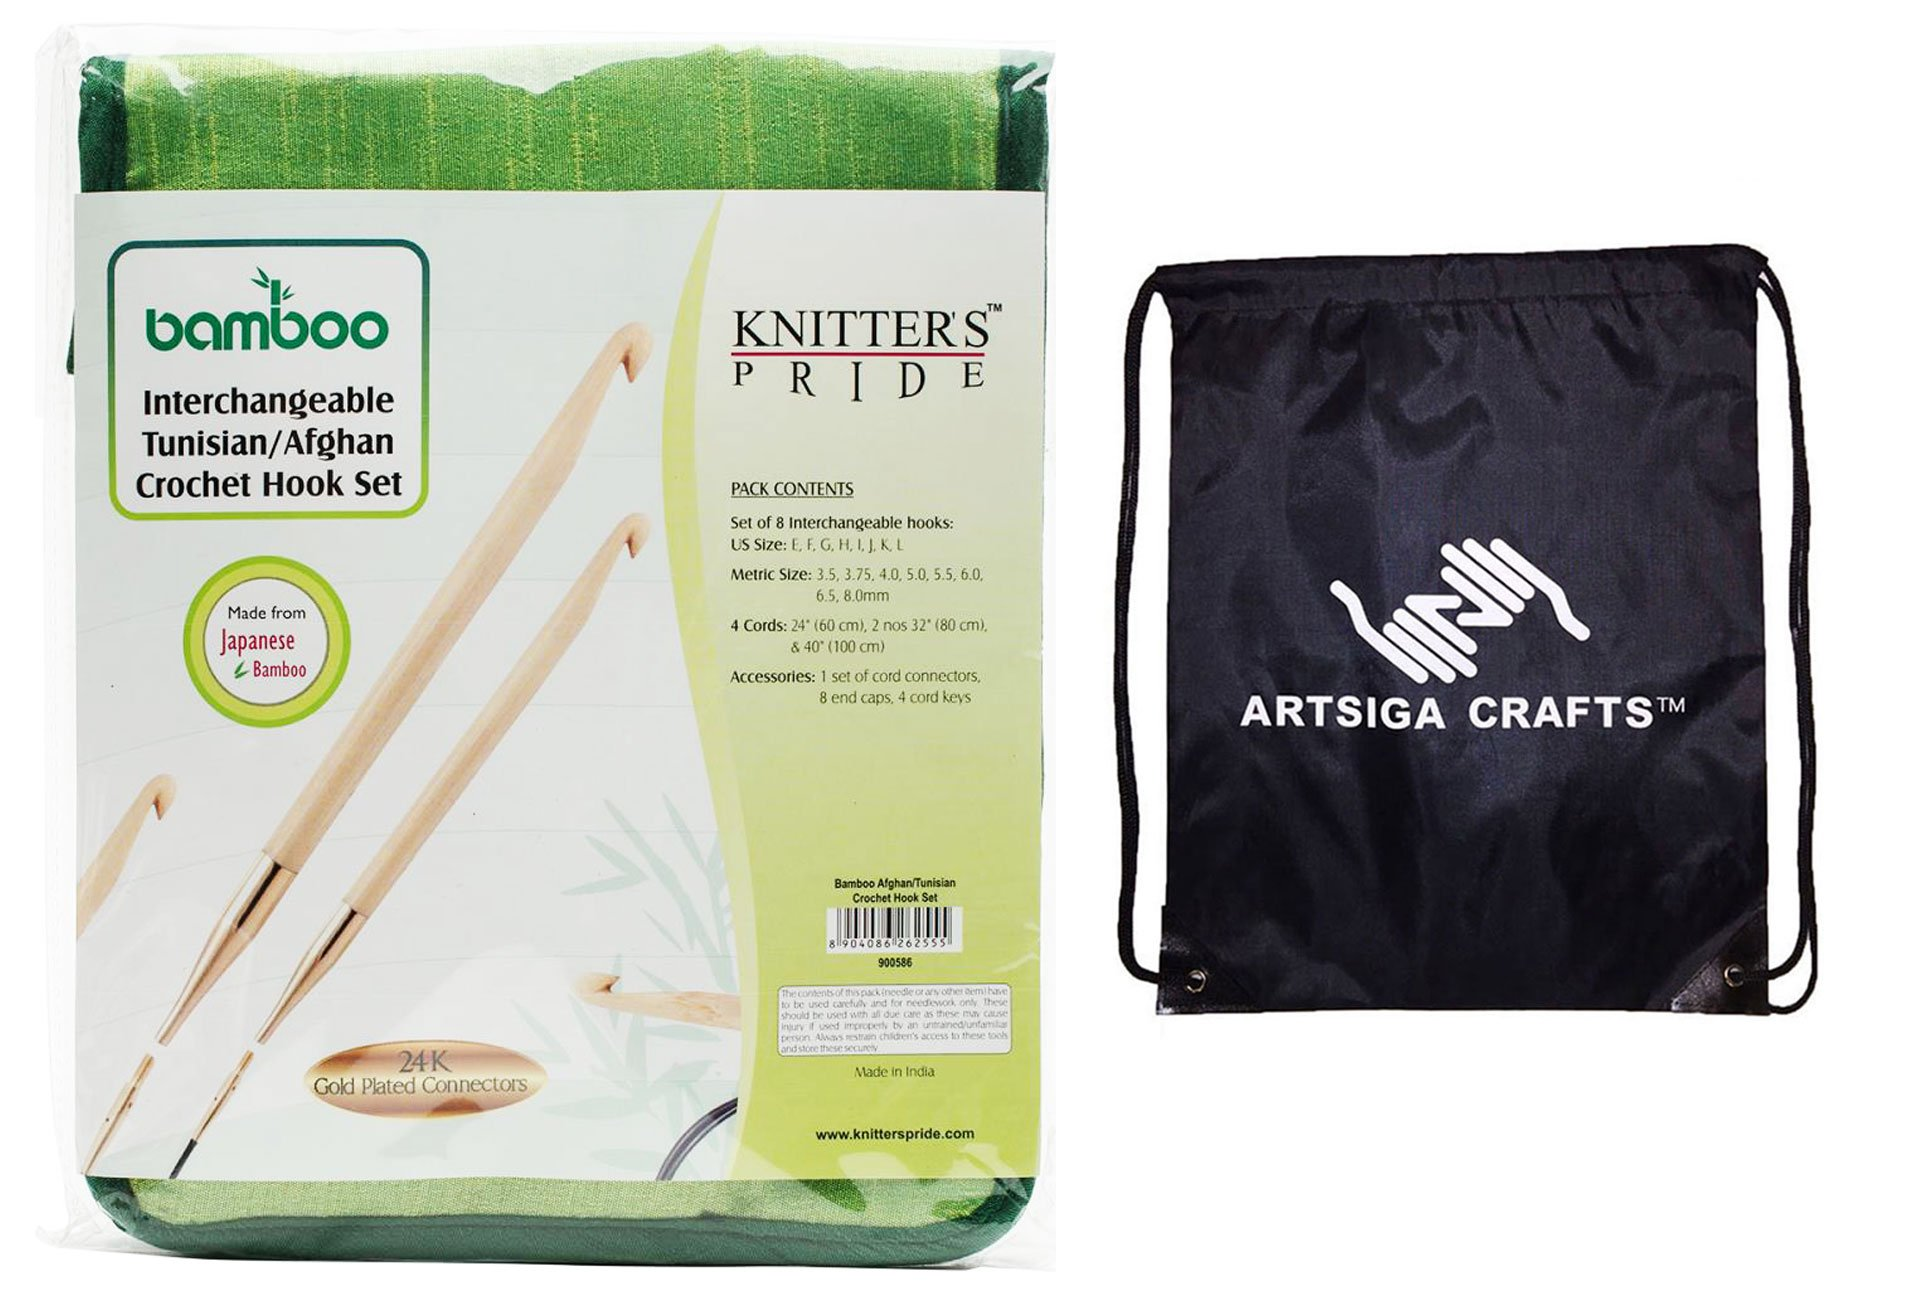 Knitter's Pride Knitting Needles Bamboo Interchangeable Afghan Tunisian Crochet Hook Set Bundle with 1 Artsiga Crafts Project Bag 900586